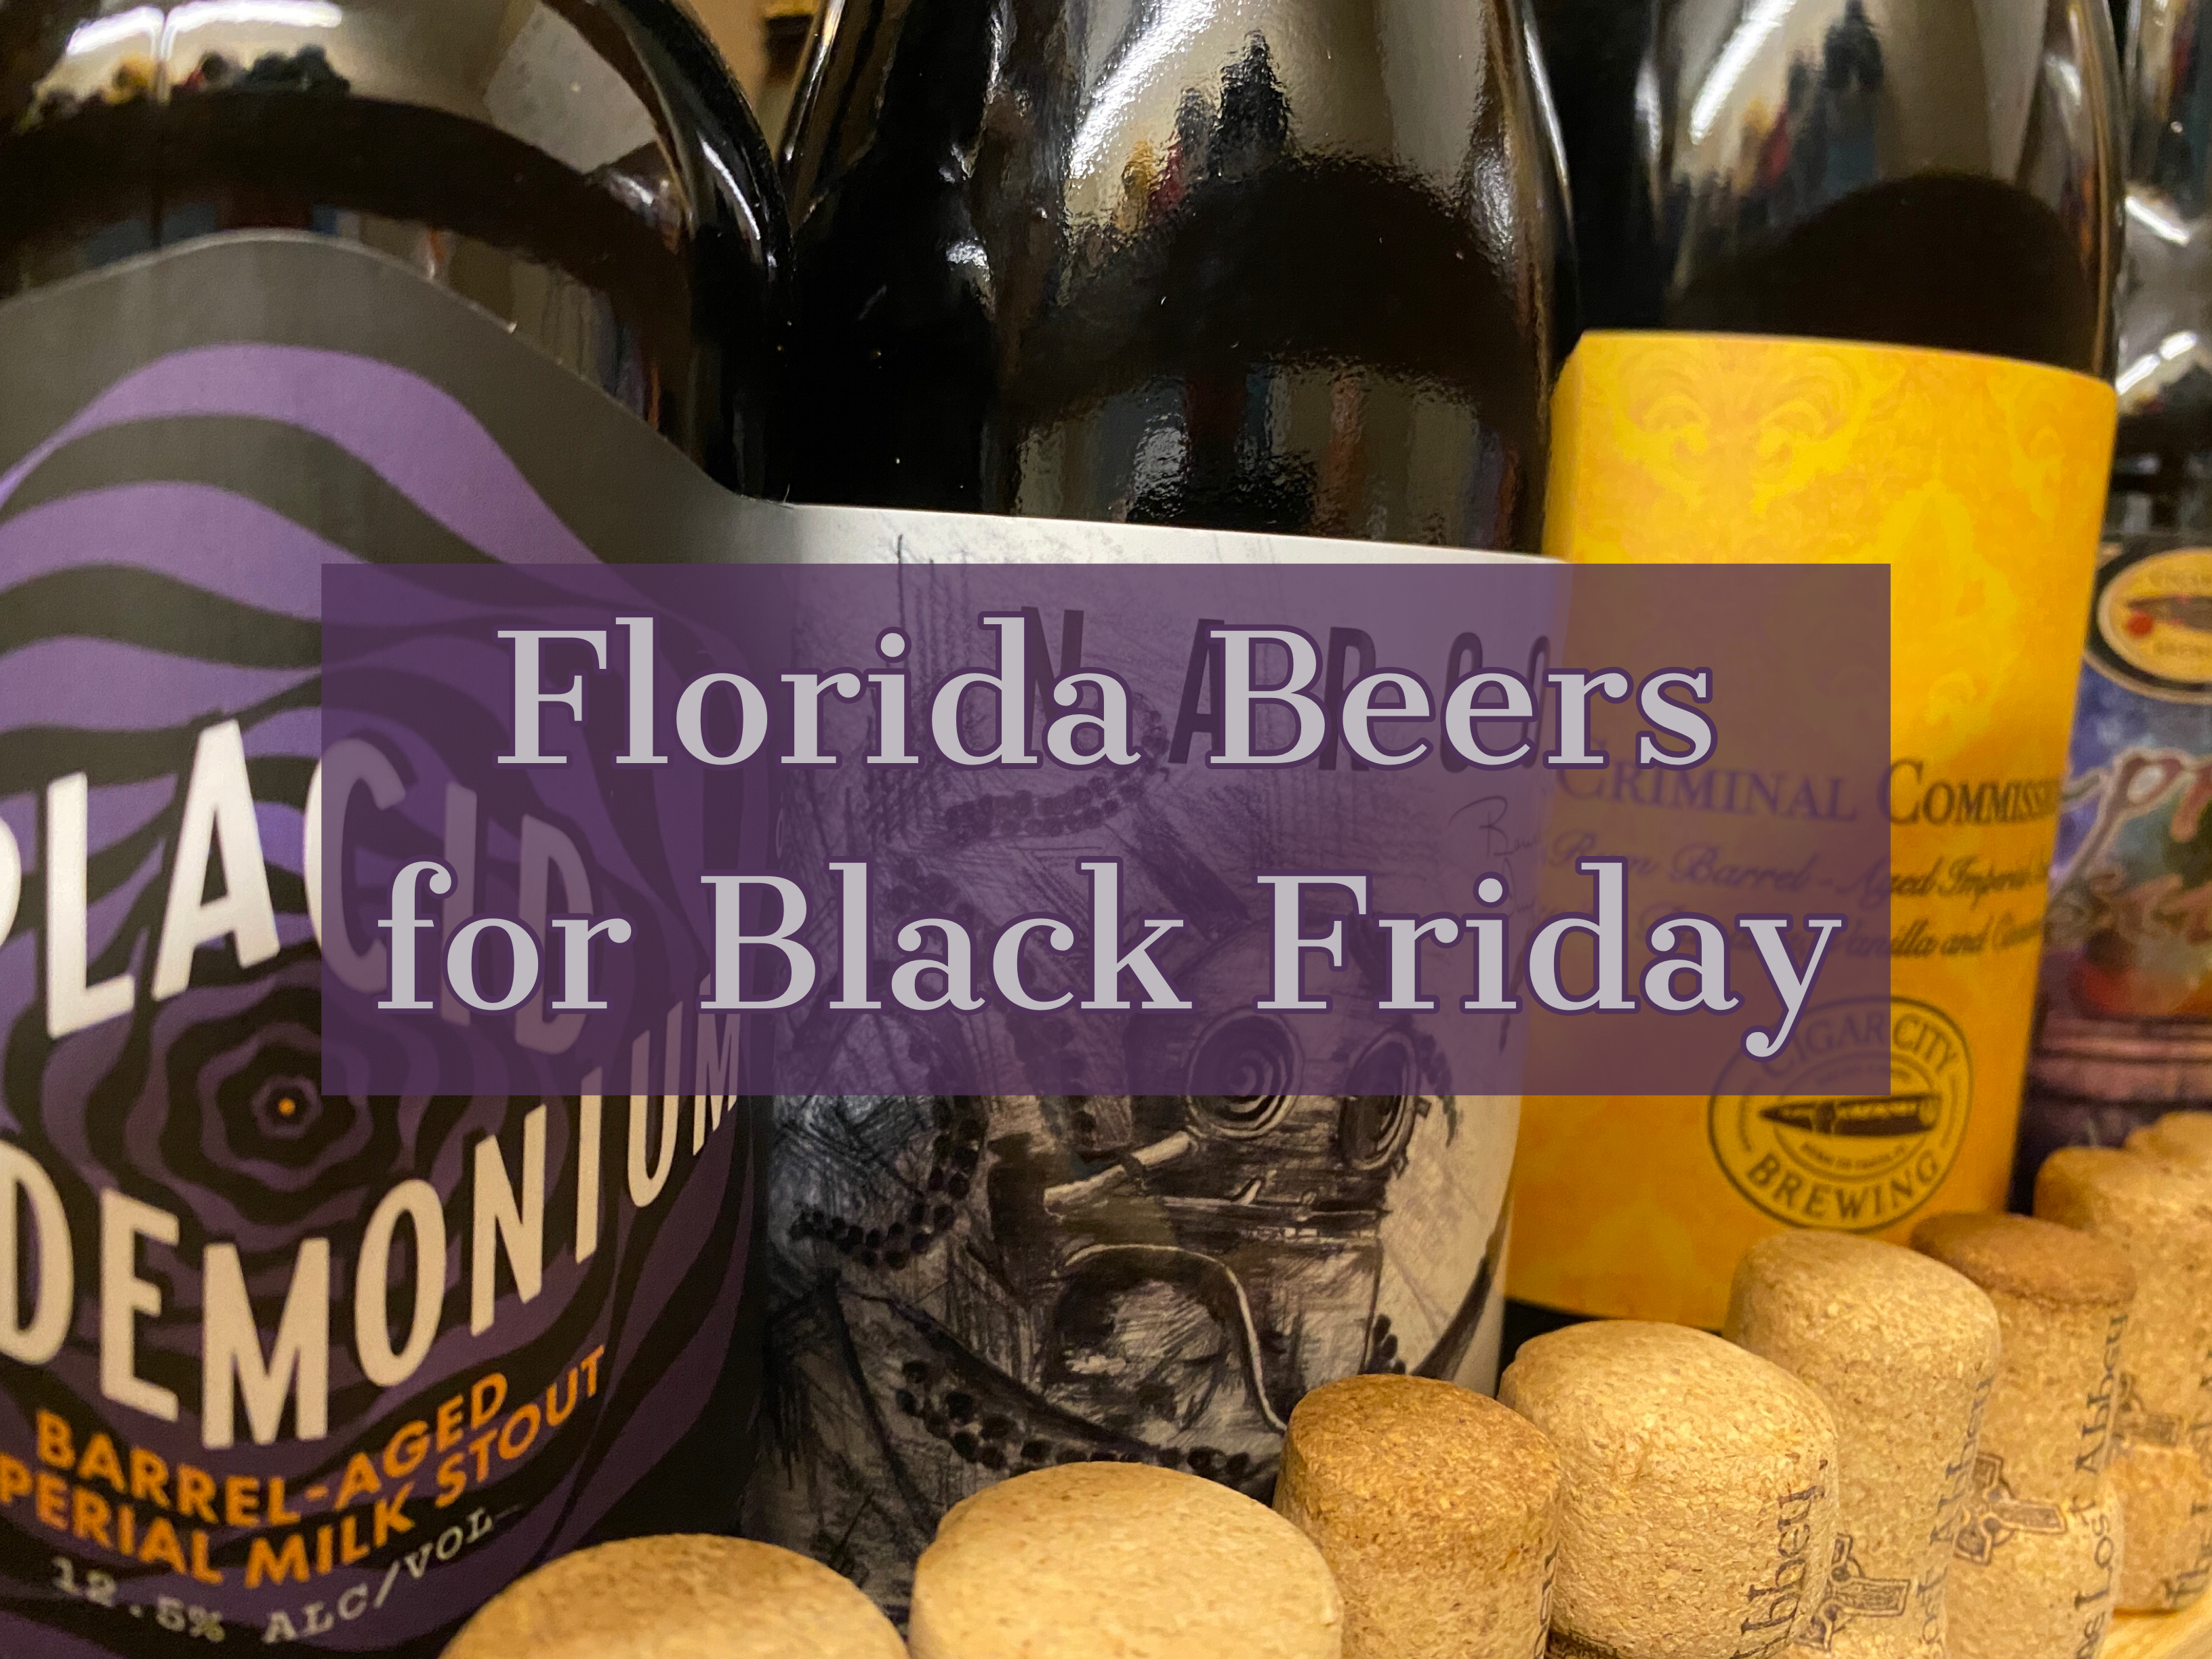 Florida Beer for Black Friday